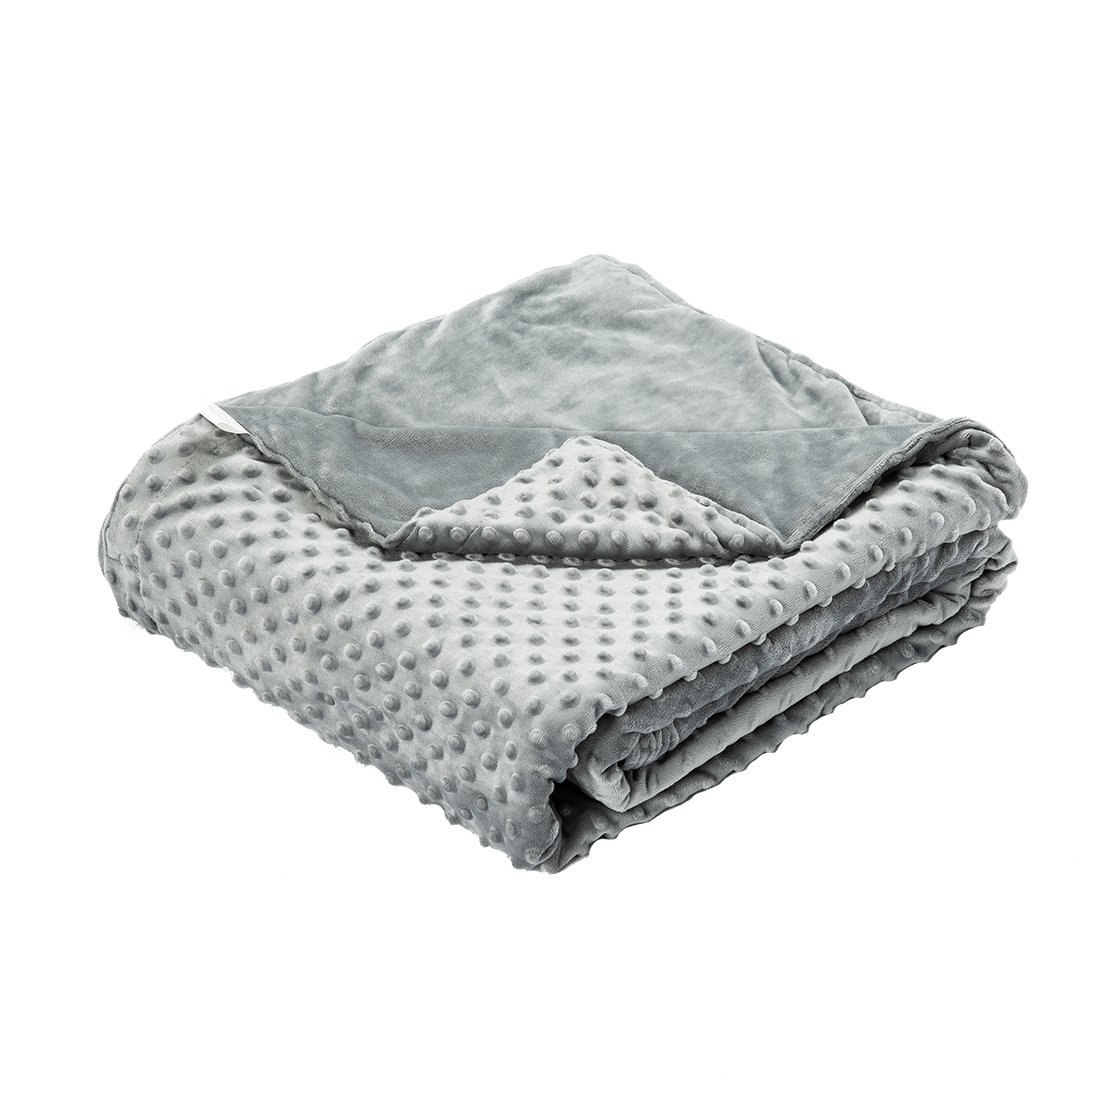 RCURT Weighted Blanket for Adults/Kids,Improve give You Better Sleep,20lbs/16lbs/12lbs 60''x80'',7lbs 41''x56''and Removable Washable Cover (60''x80'' Cover)